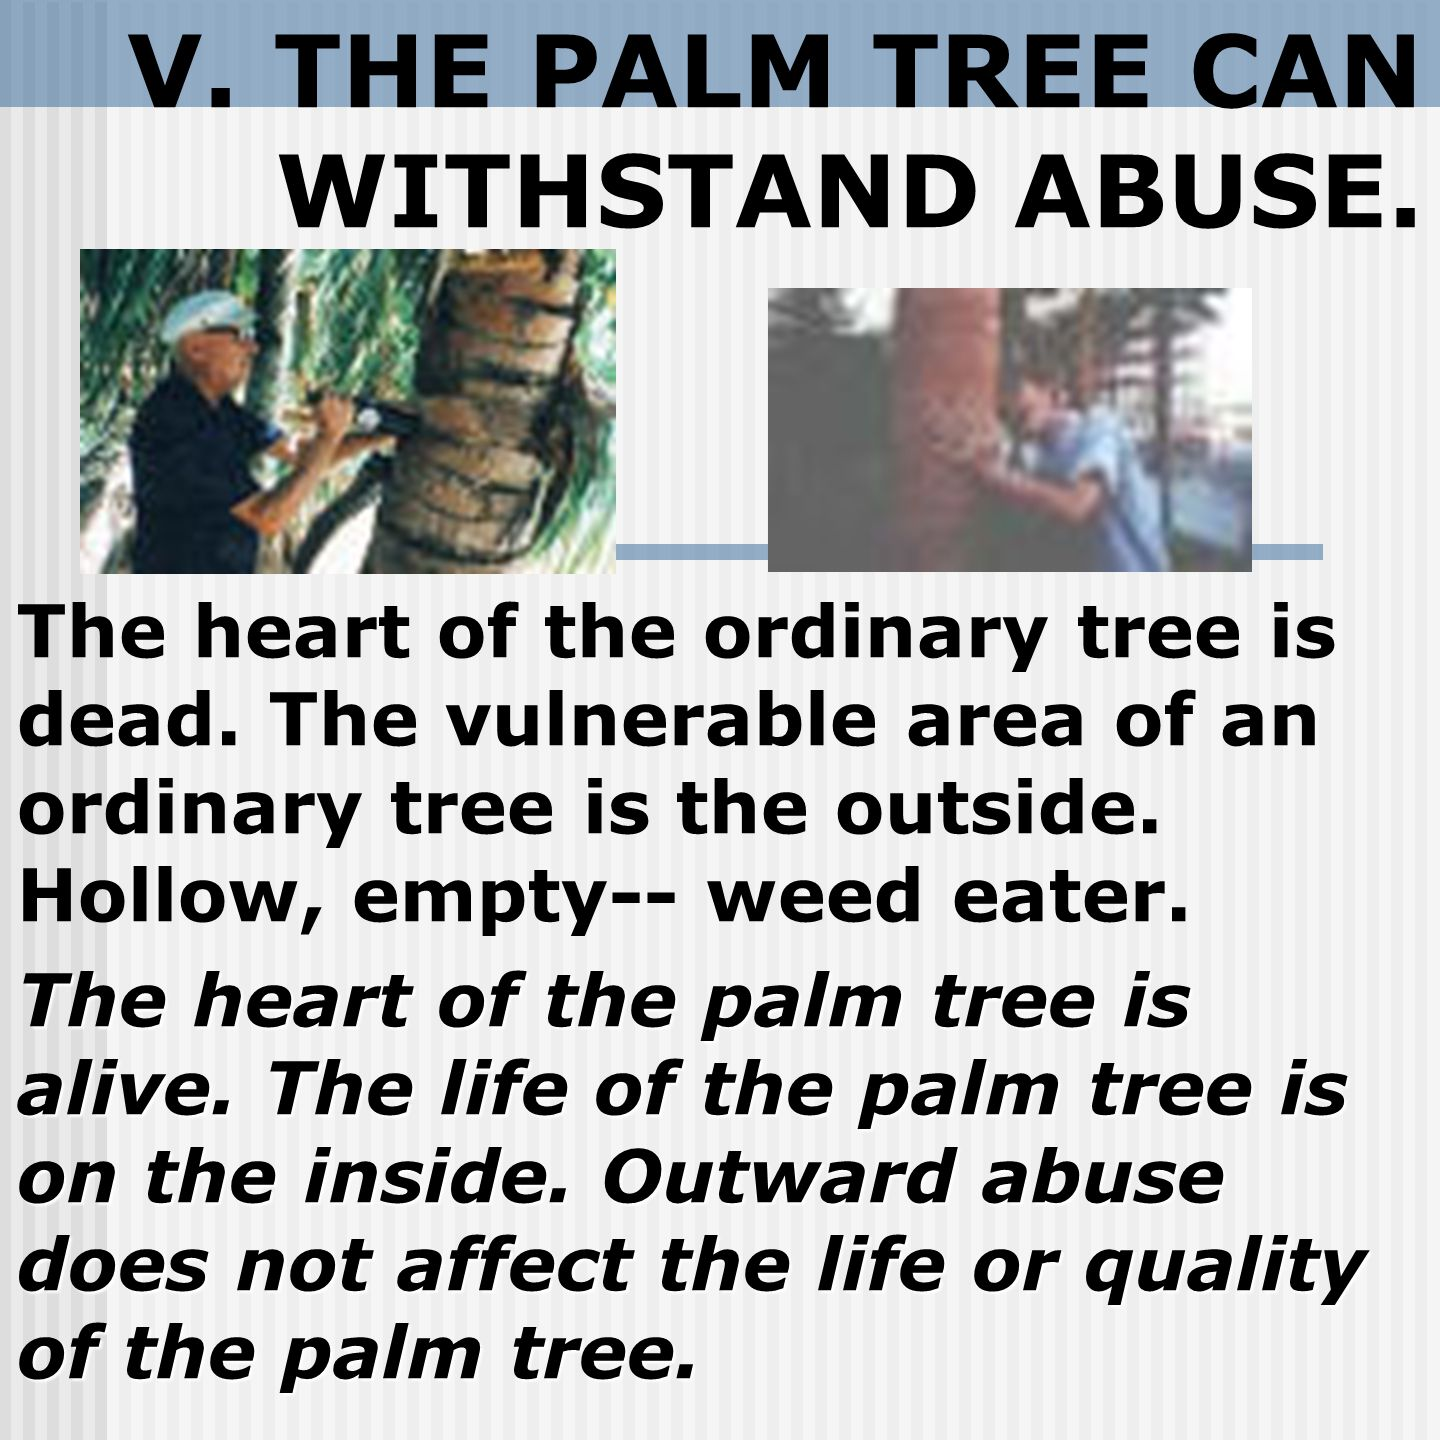 V. THE PALM TREE CAN WITHSTAND ABUSE. The heart of the ordinary tree is dead.